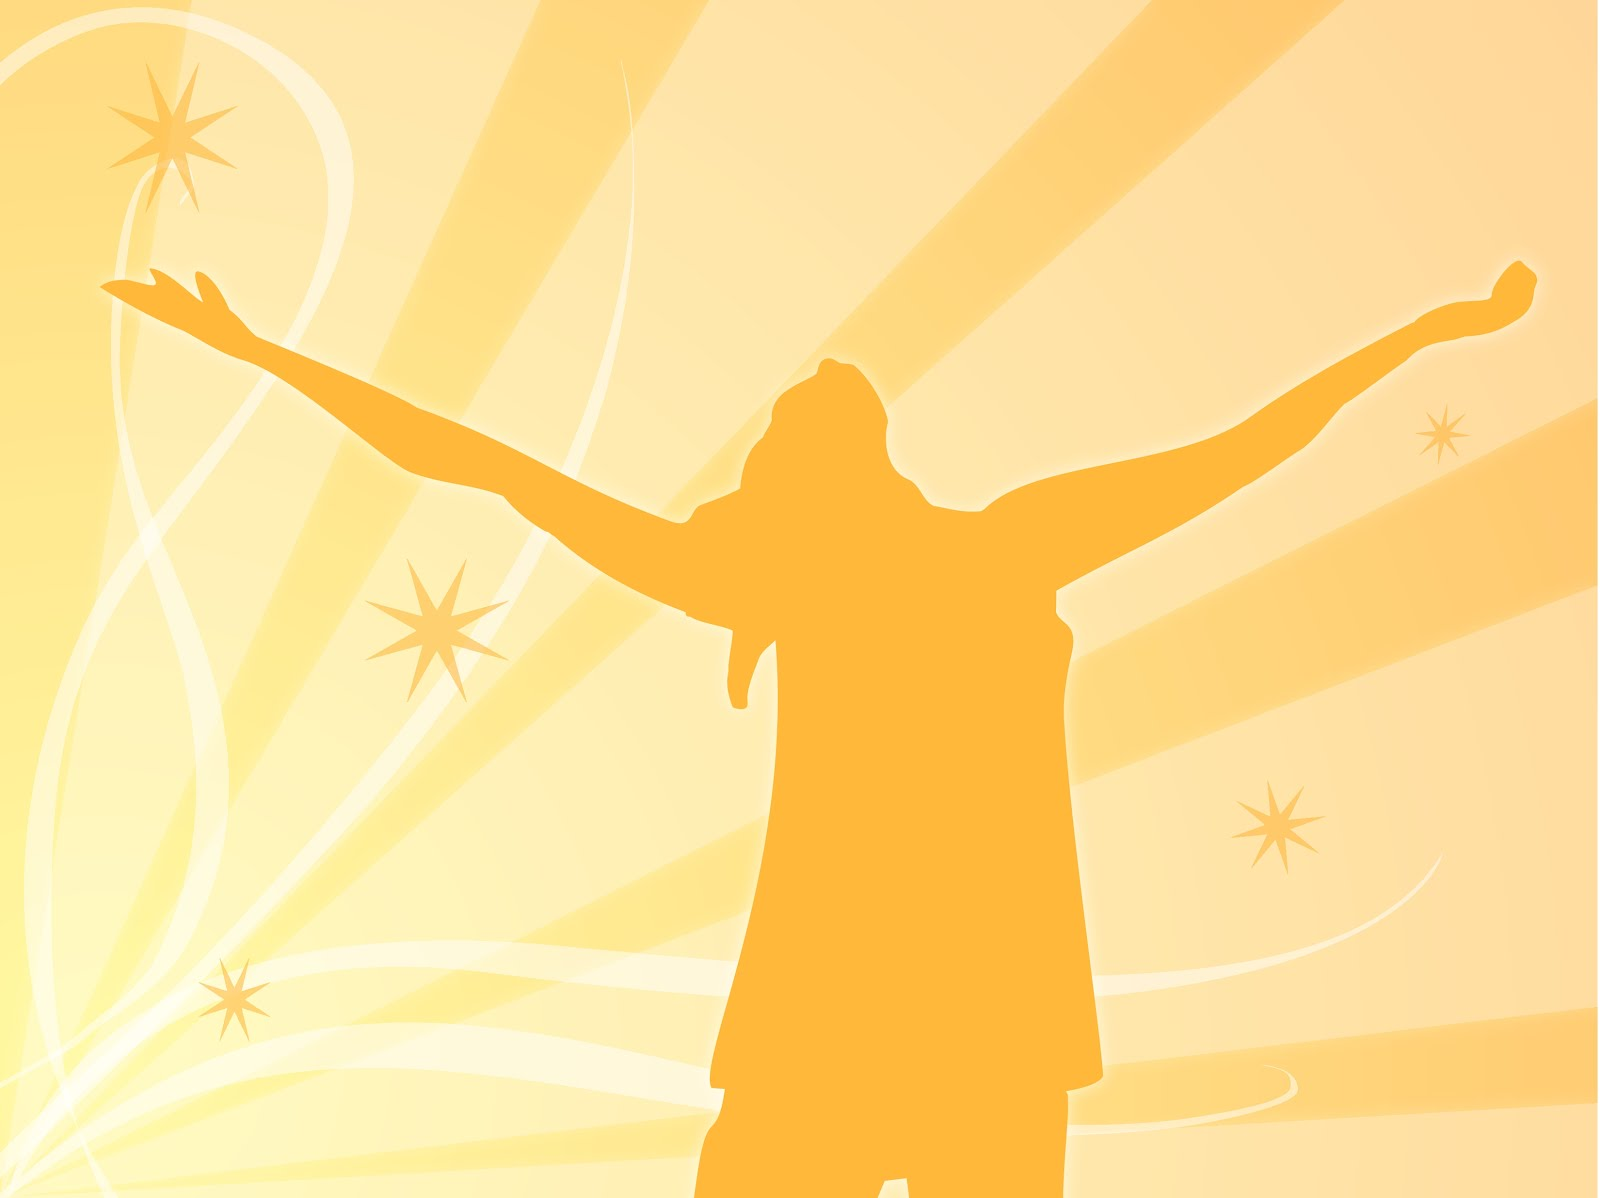 Worship Praise Silhouette Images & Pictures - Becuo